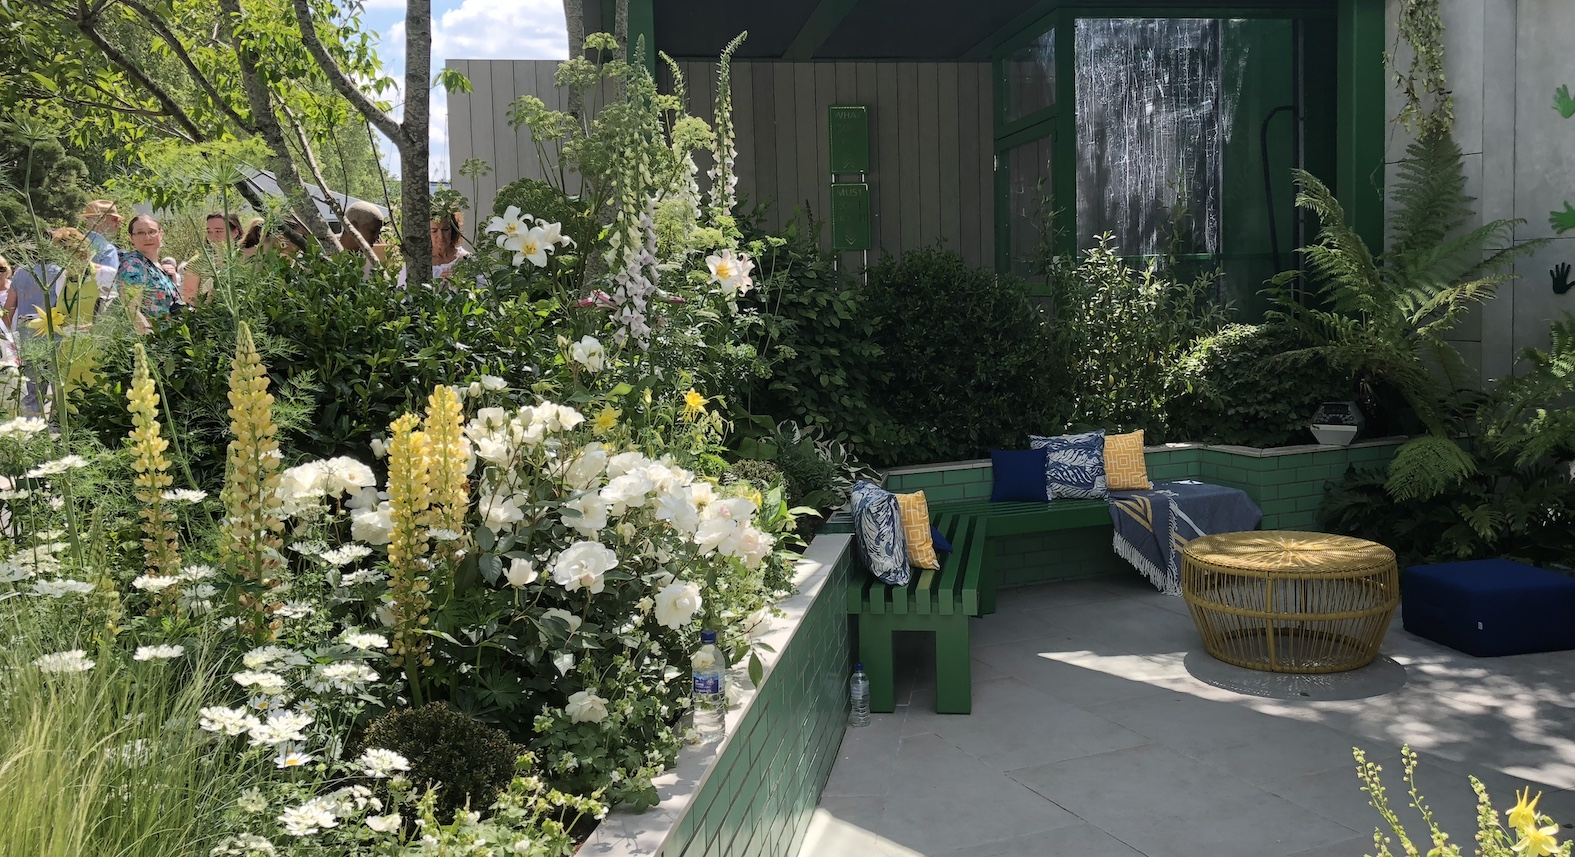 The Greenfingers Charity Garden at the Chelsea Flower Show 2019